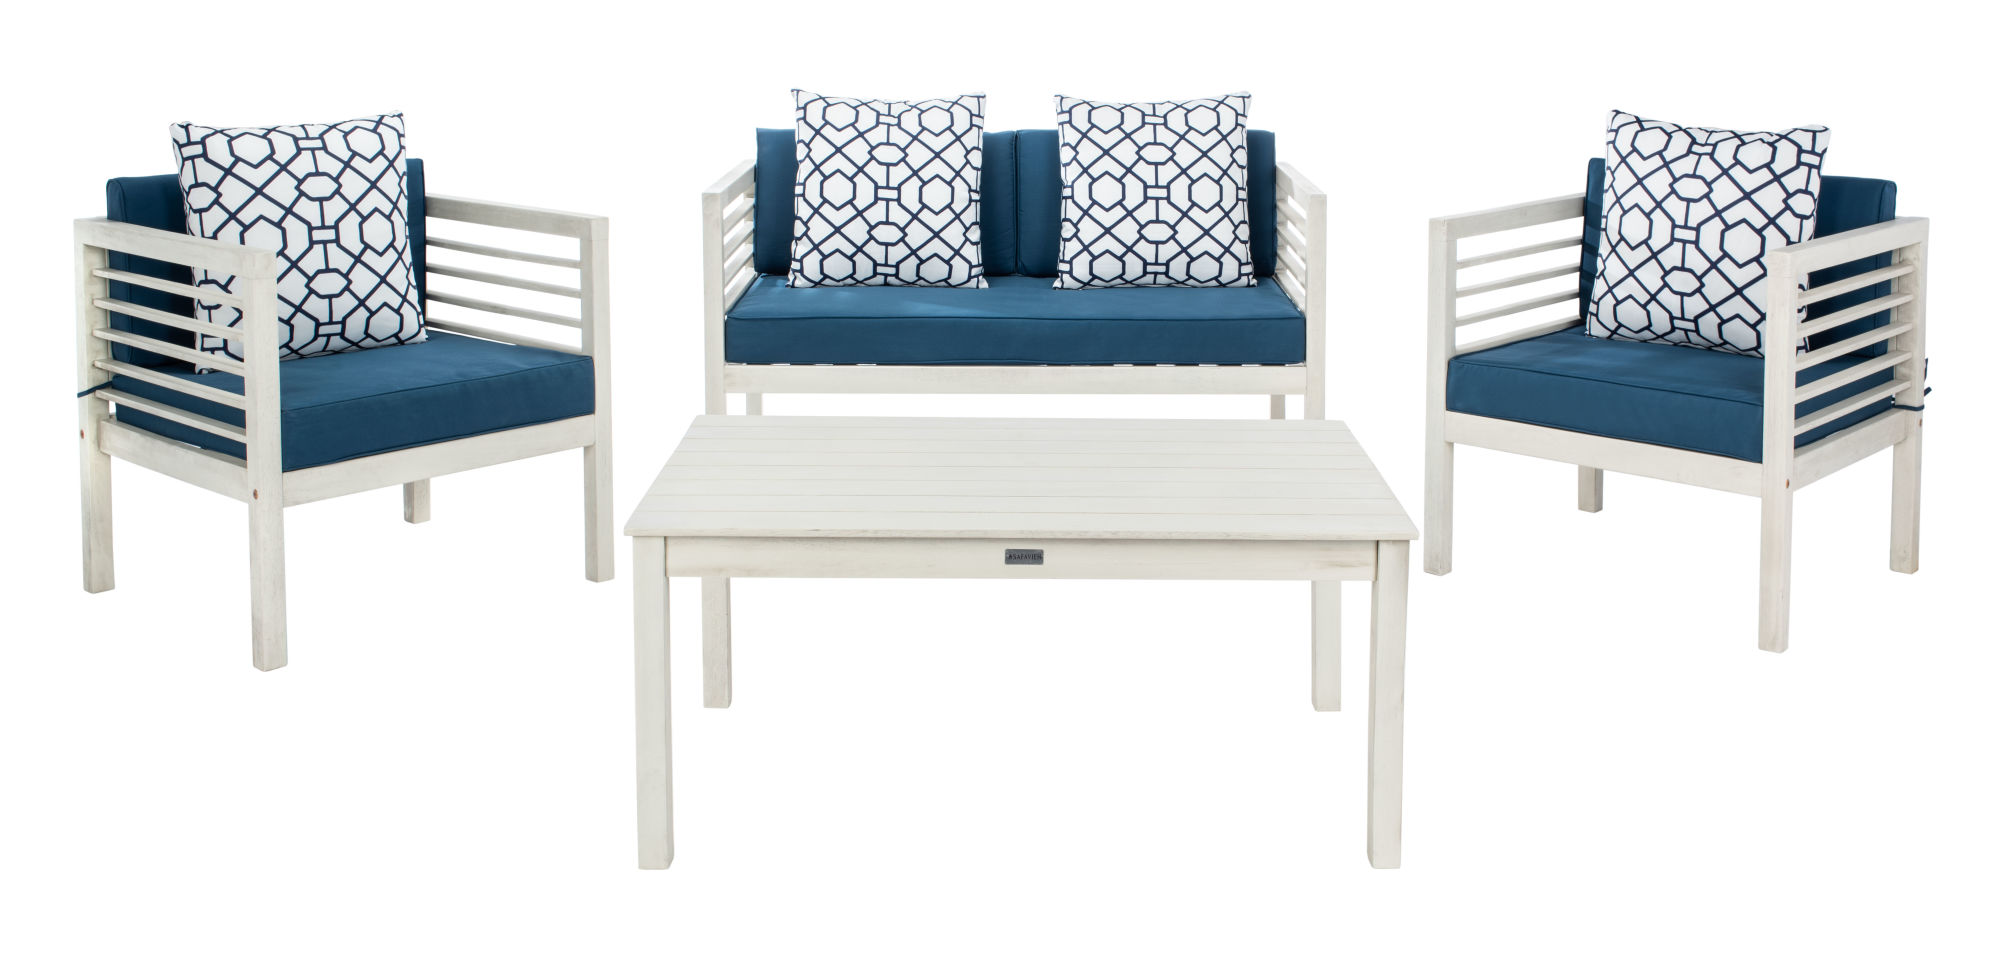 Alda 4 Pc Outdoor Set With Accent Pillows on Safavieh Alda 4Pc Outdoor Set id=55077